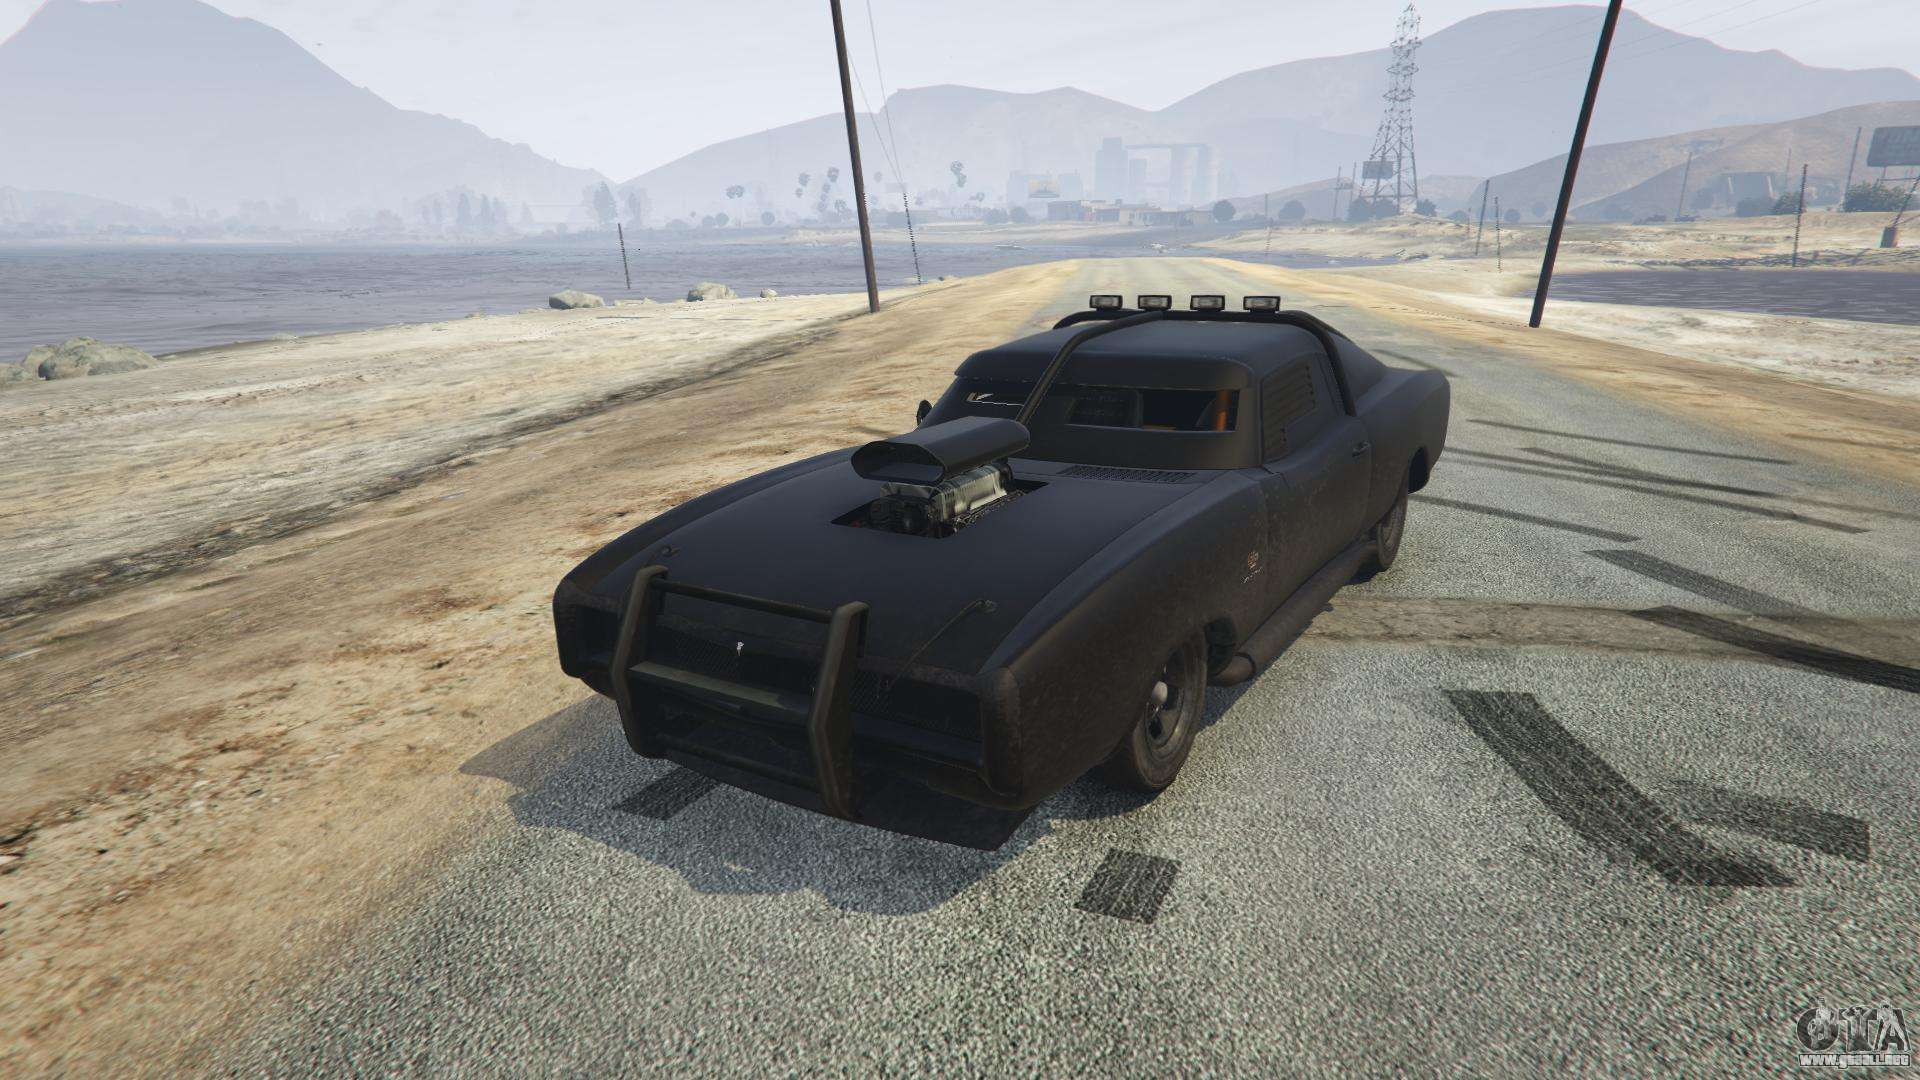 Duke O'Death de GTA 5 - vista frontal